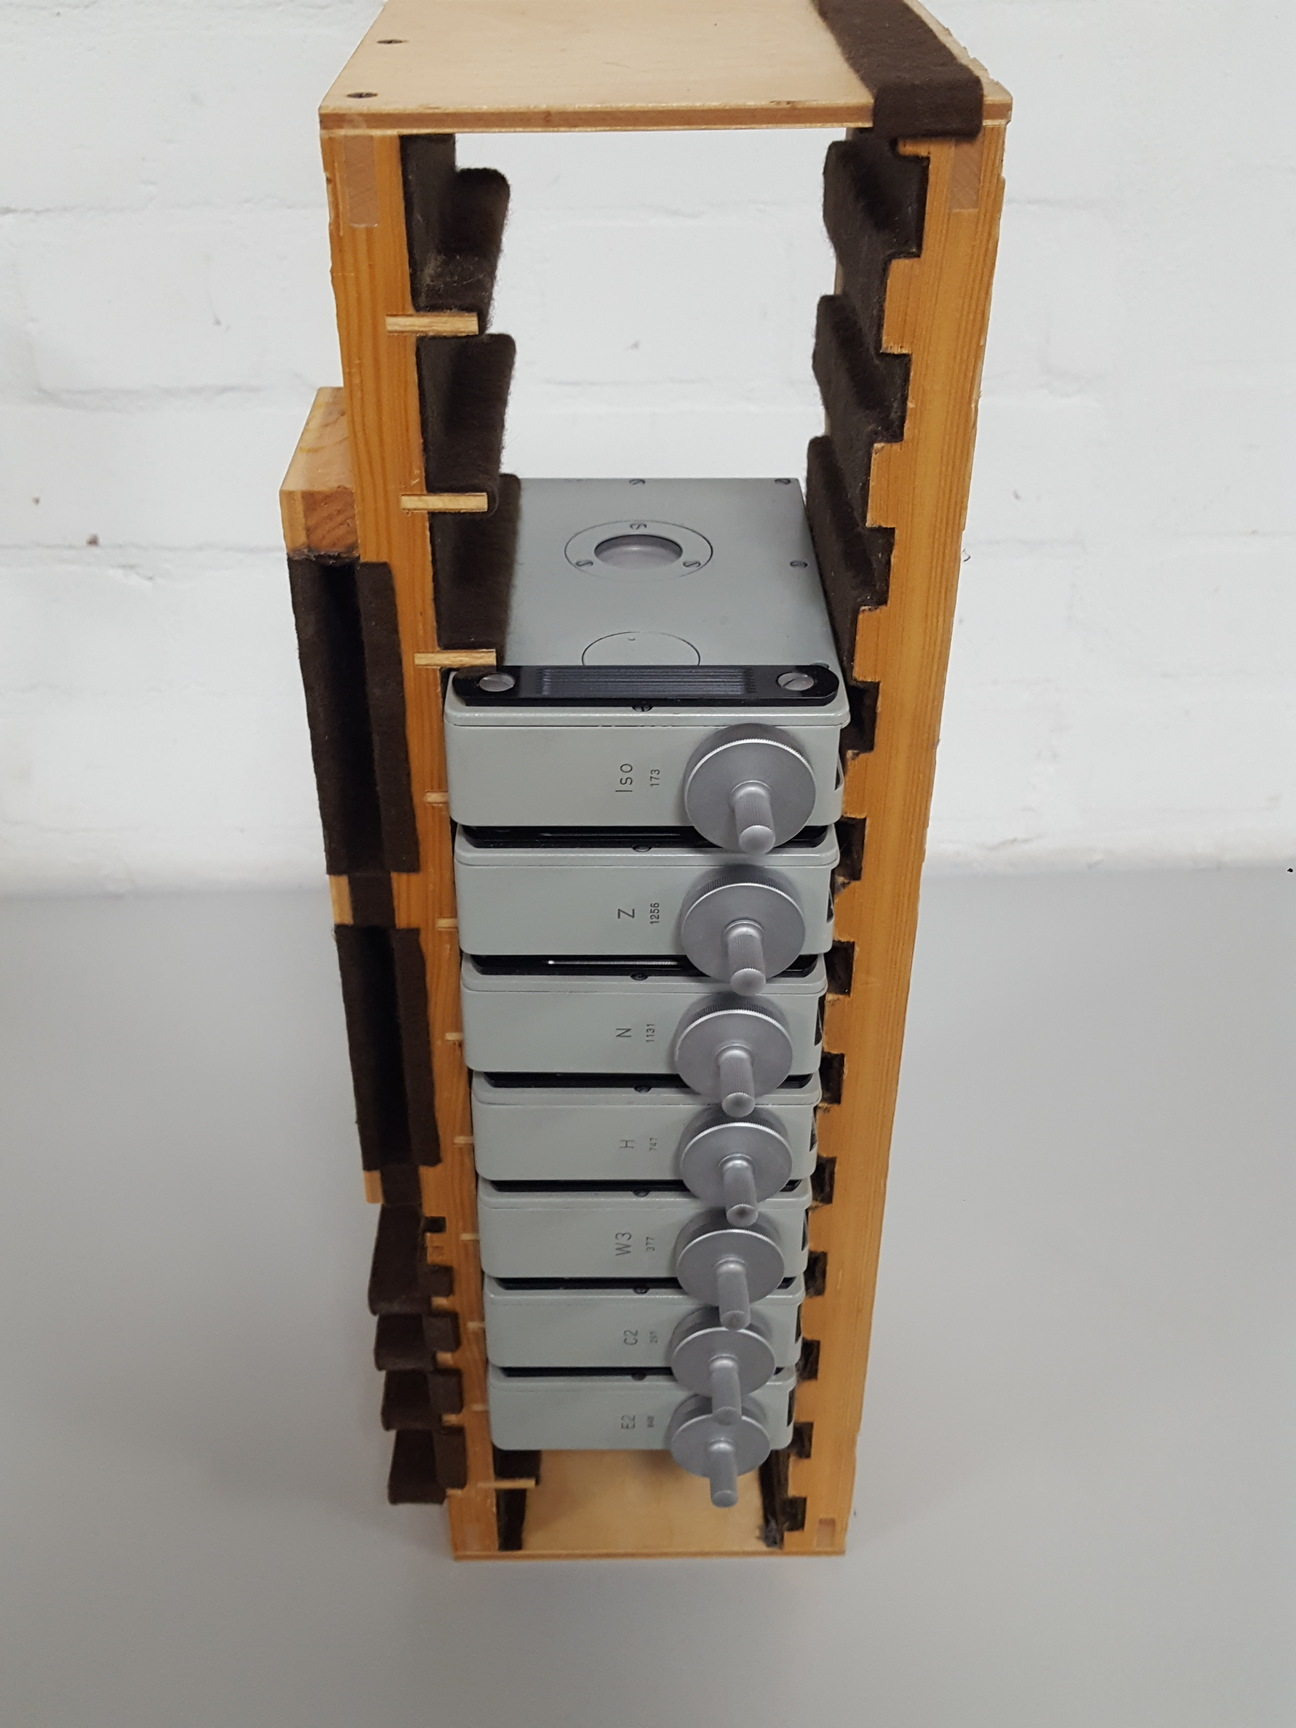 Carl Zeiss Projection Tool Makers Microscope   Optics